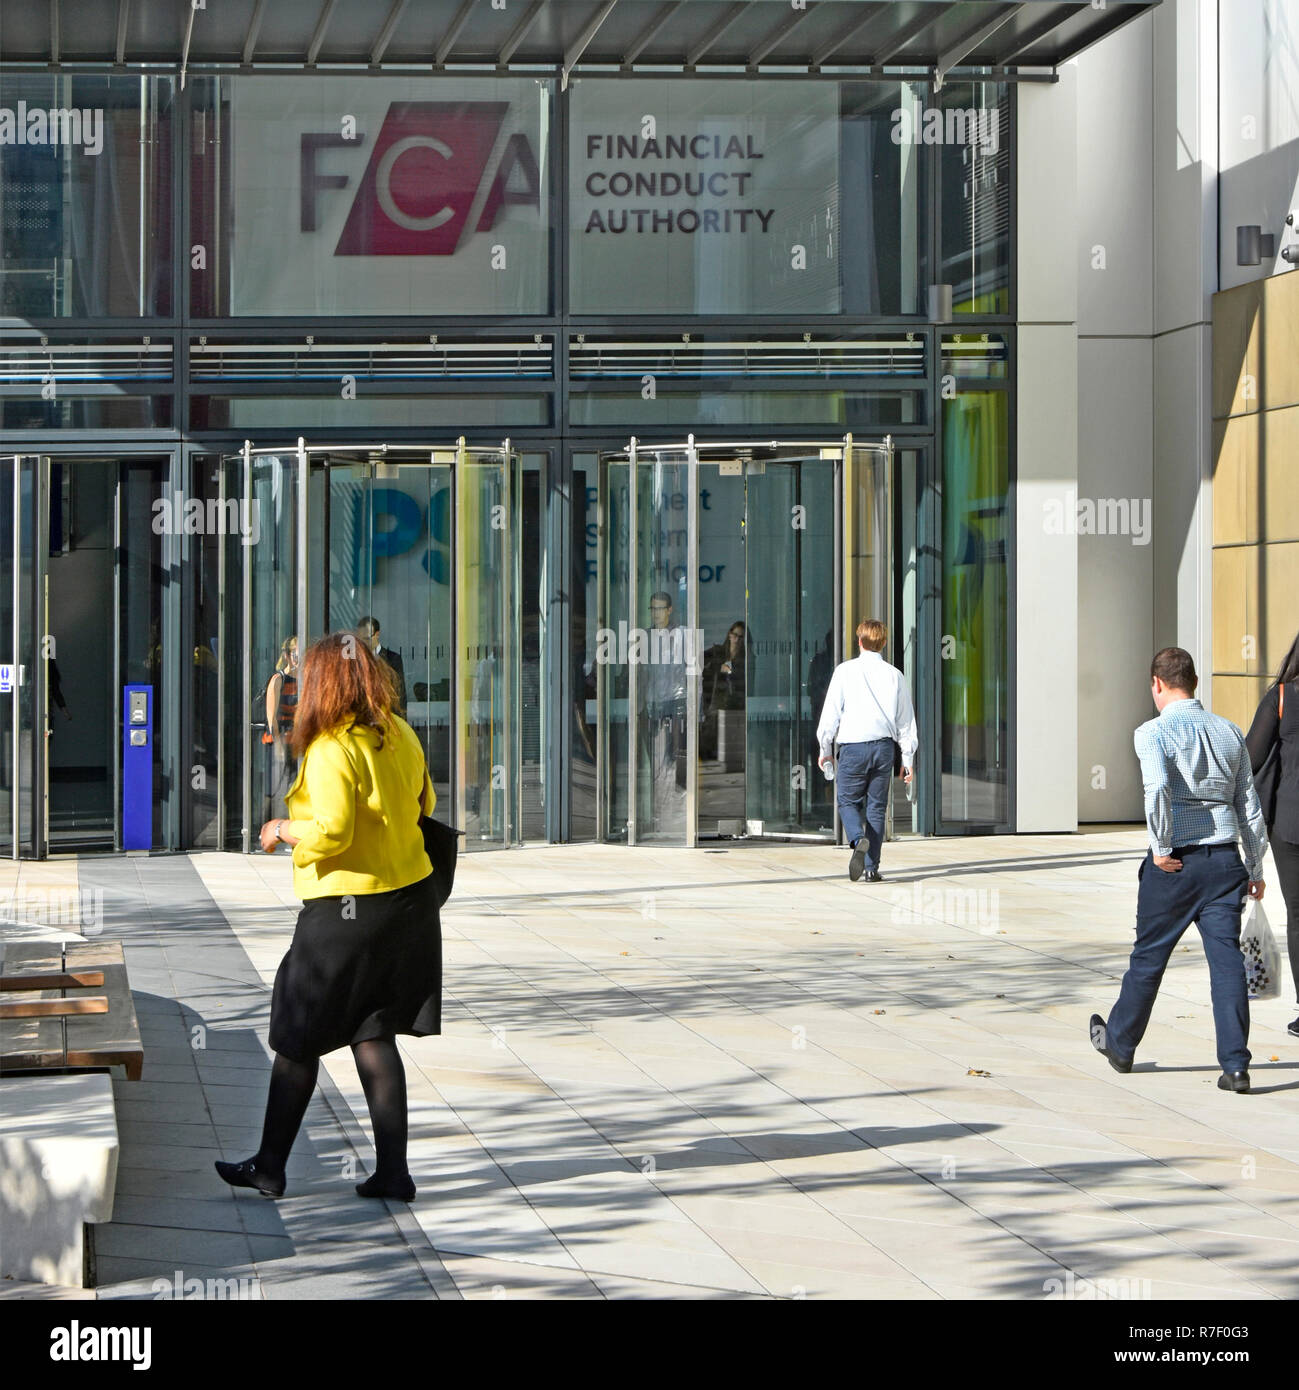 Financial Conduct Authority FCA modern London office building in International Quarter near Westfield & Olympic Park Stratford East London England UK - Stock Image